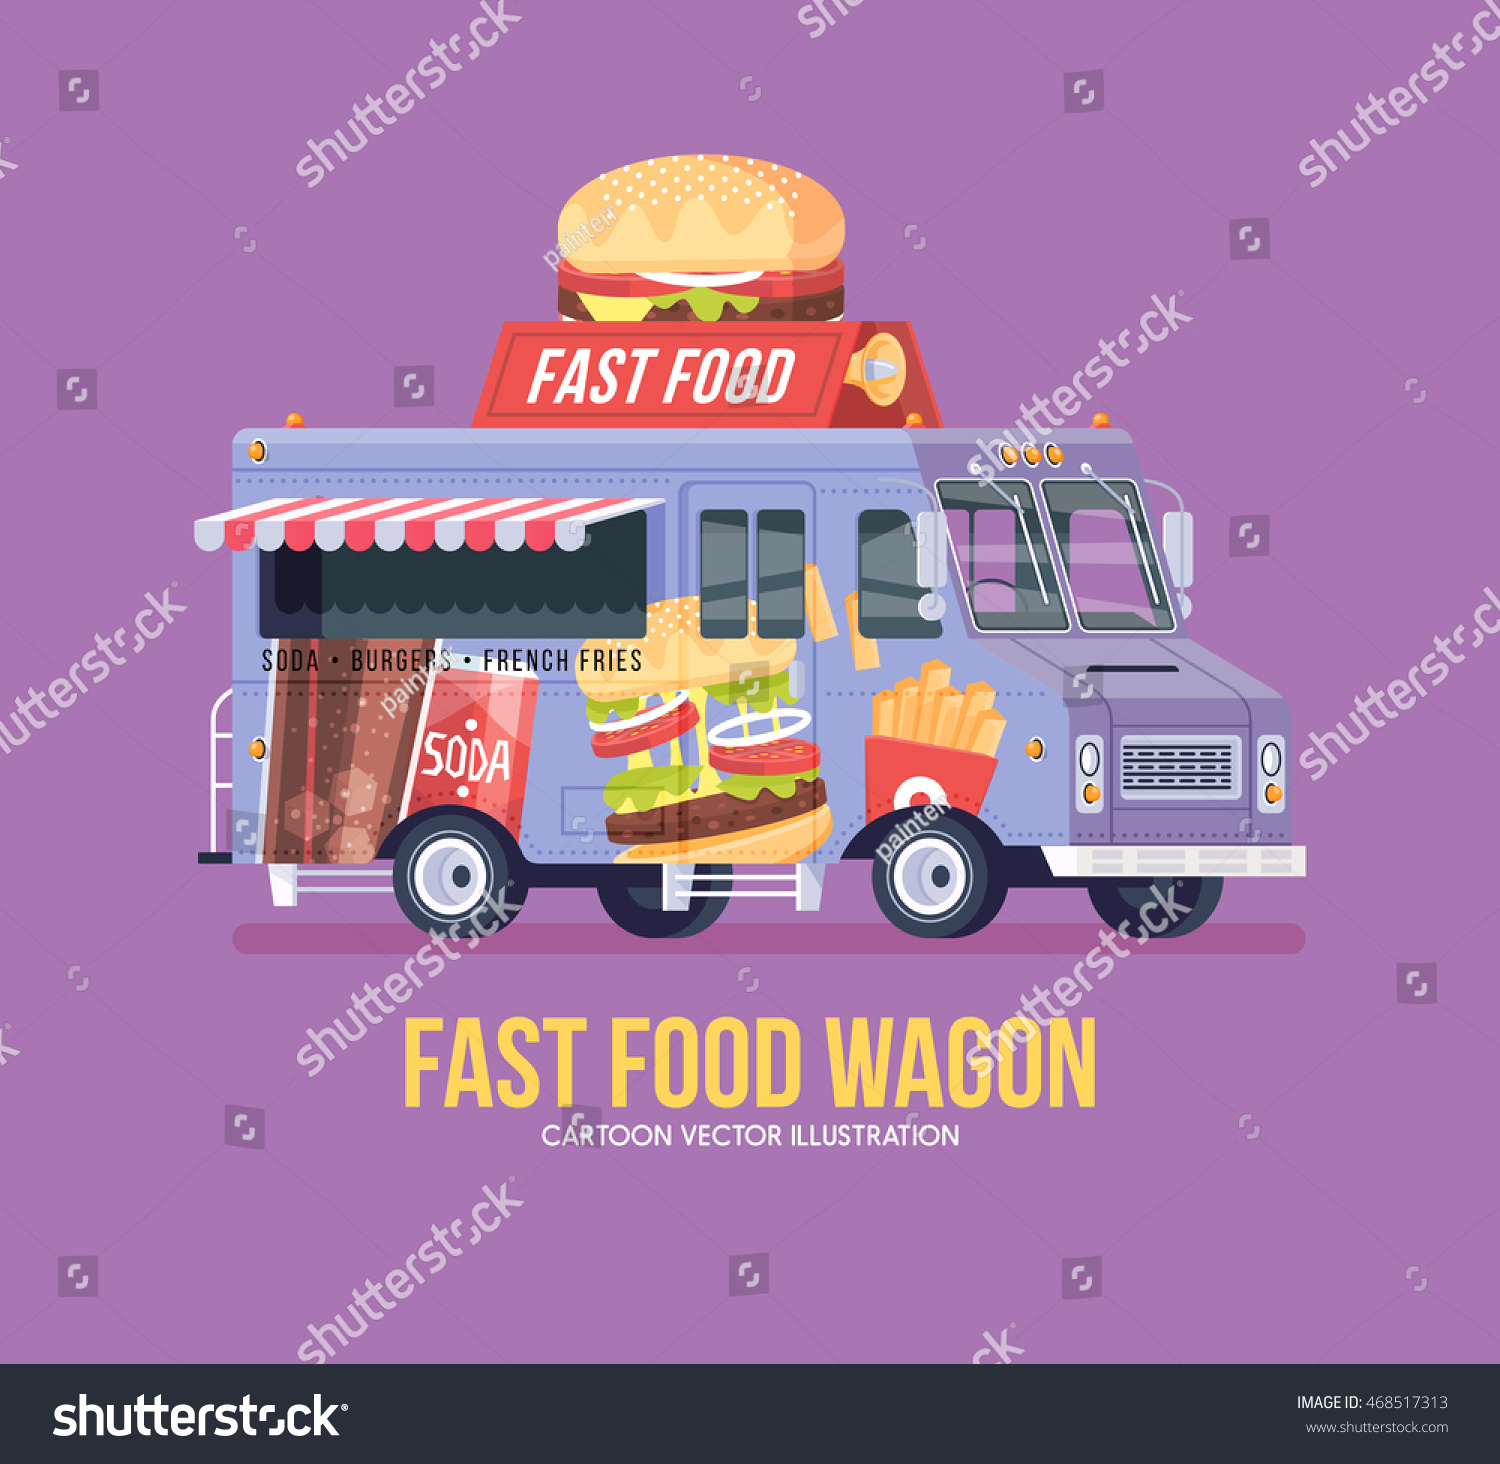 Colorful Vector Fast Food Truck Street Cuisine Burgers Sanwiches French Fries